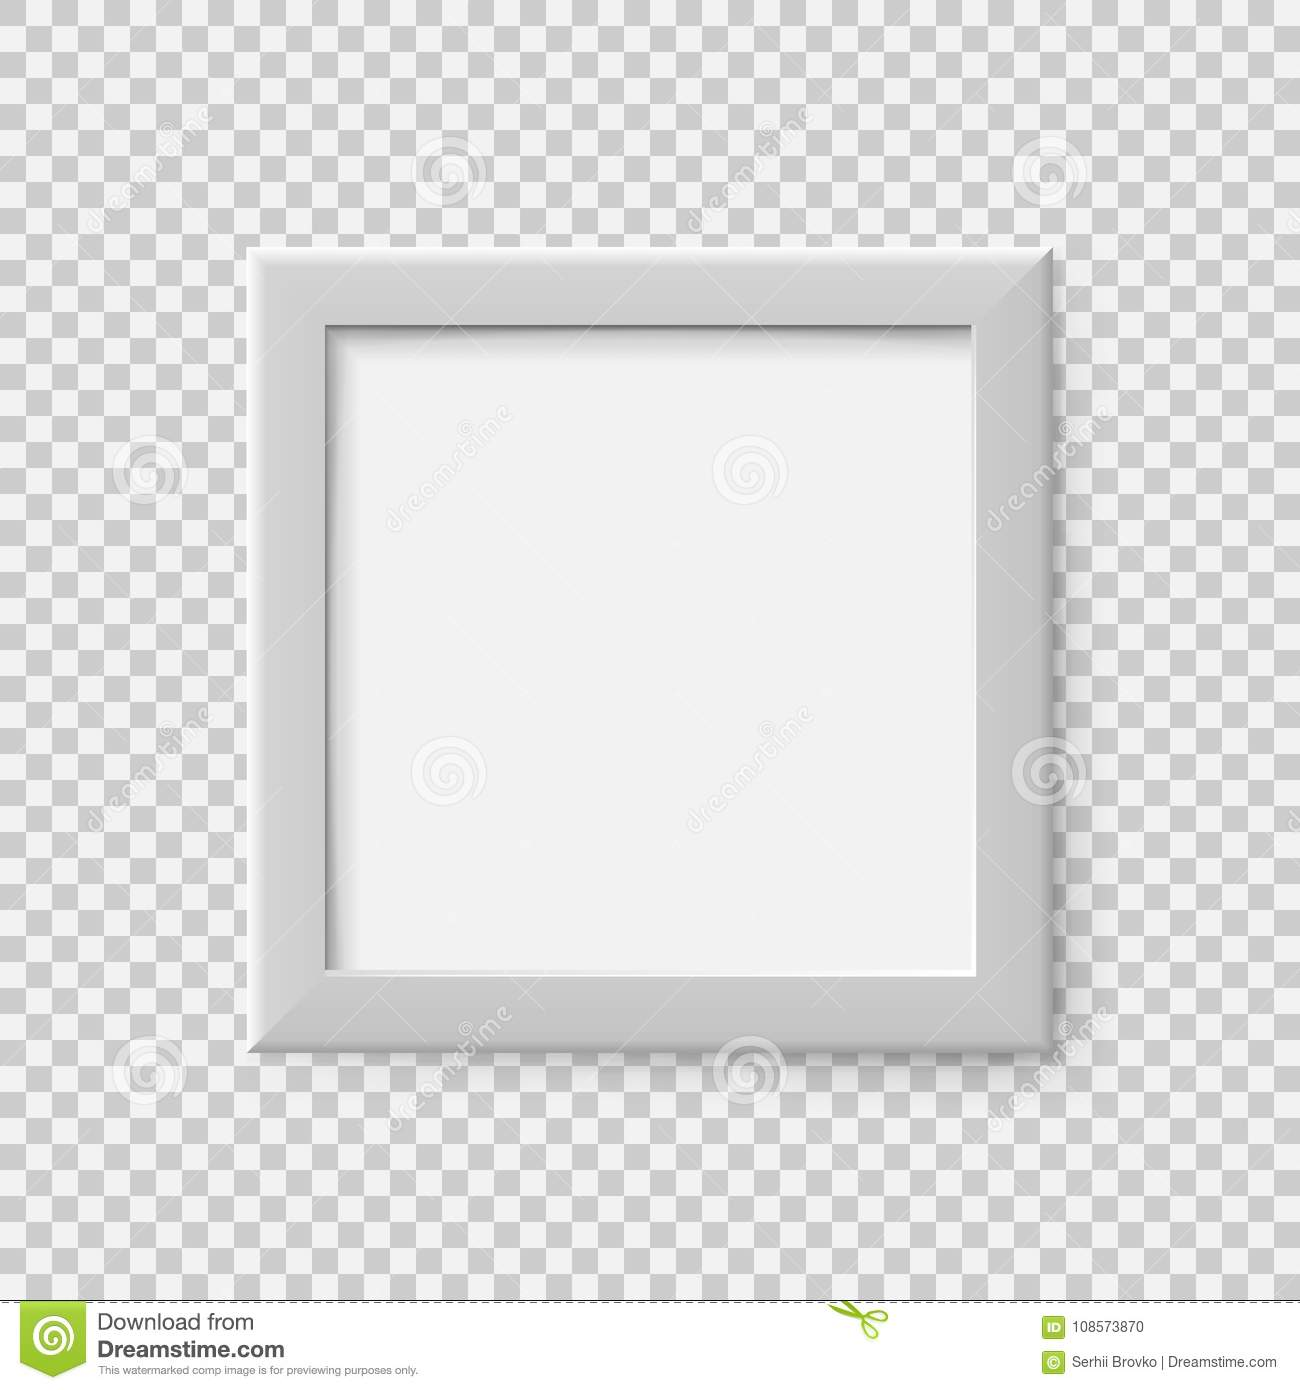 Realistic Square Empty Picture Frame. Blank White Picture Frame ...